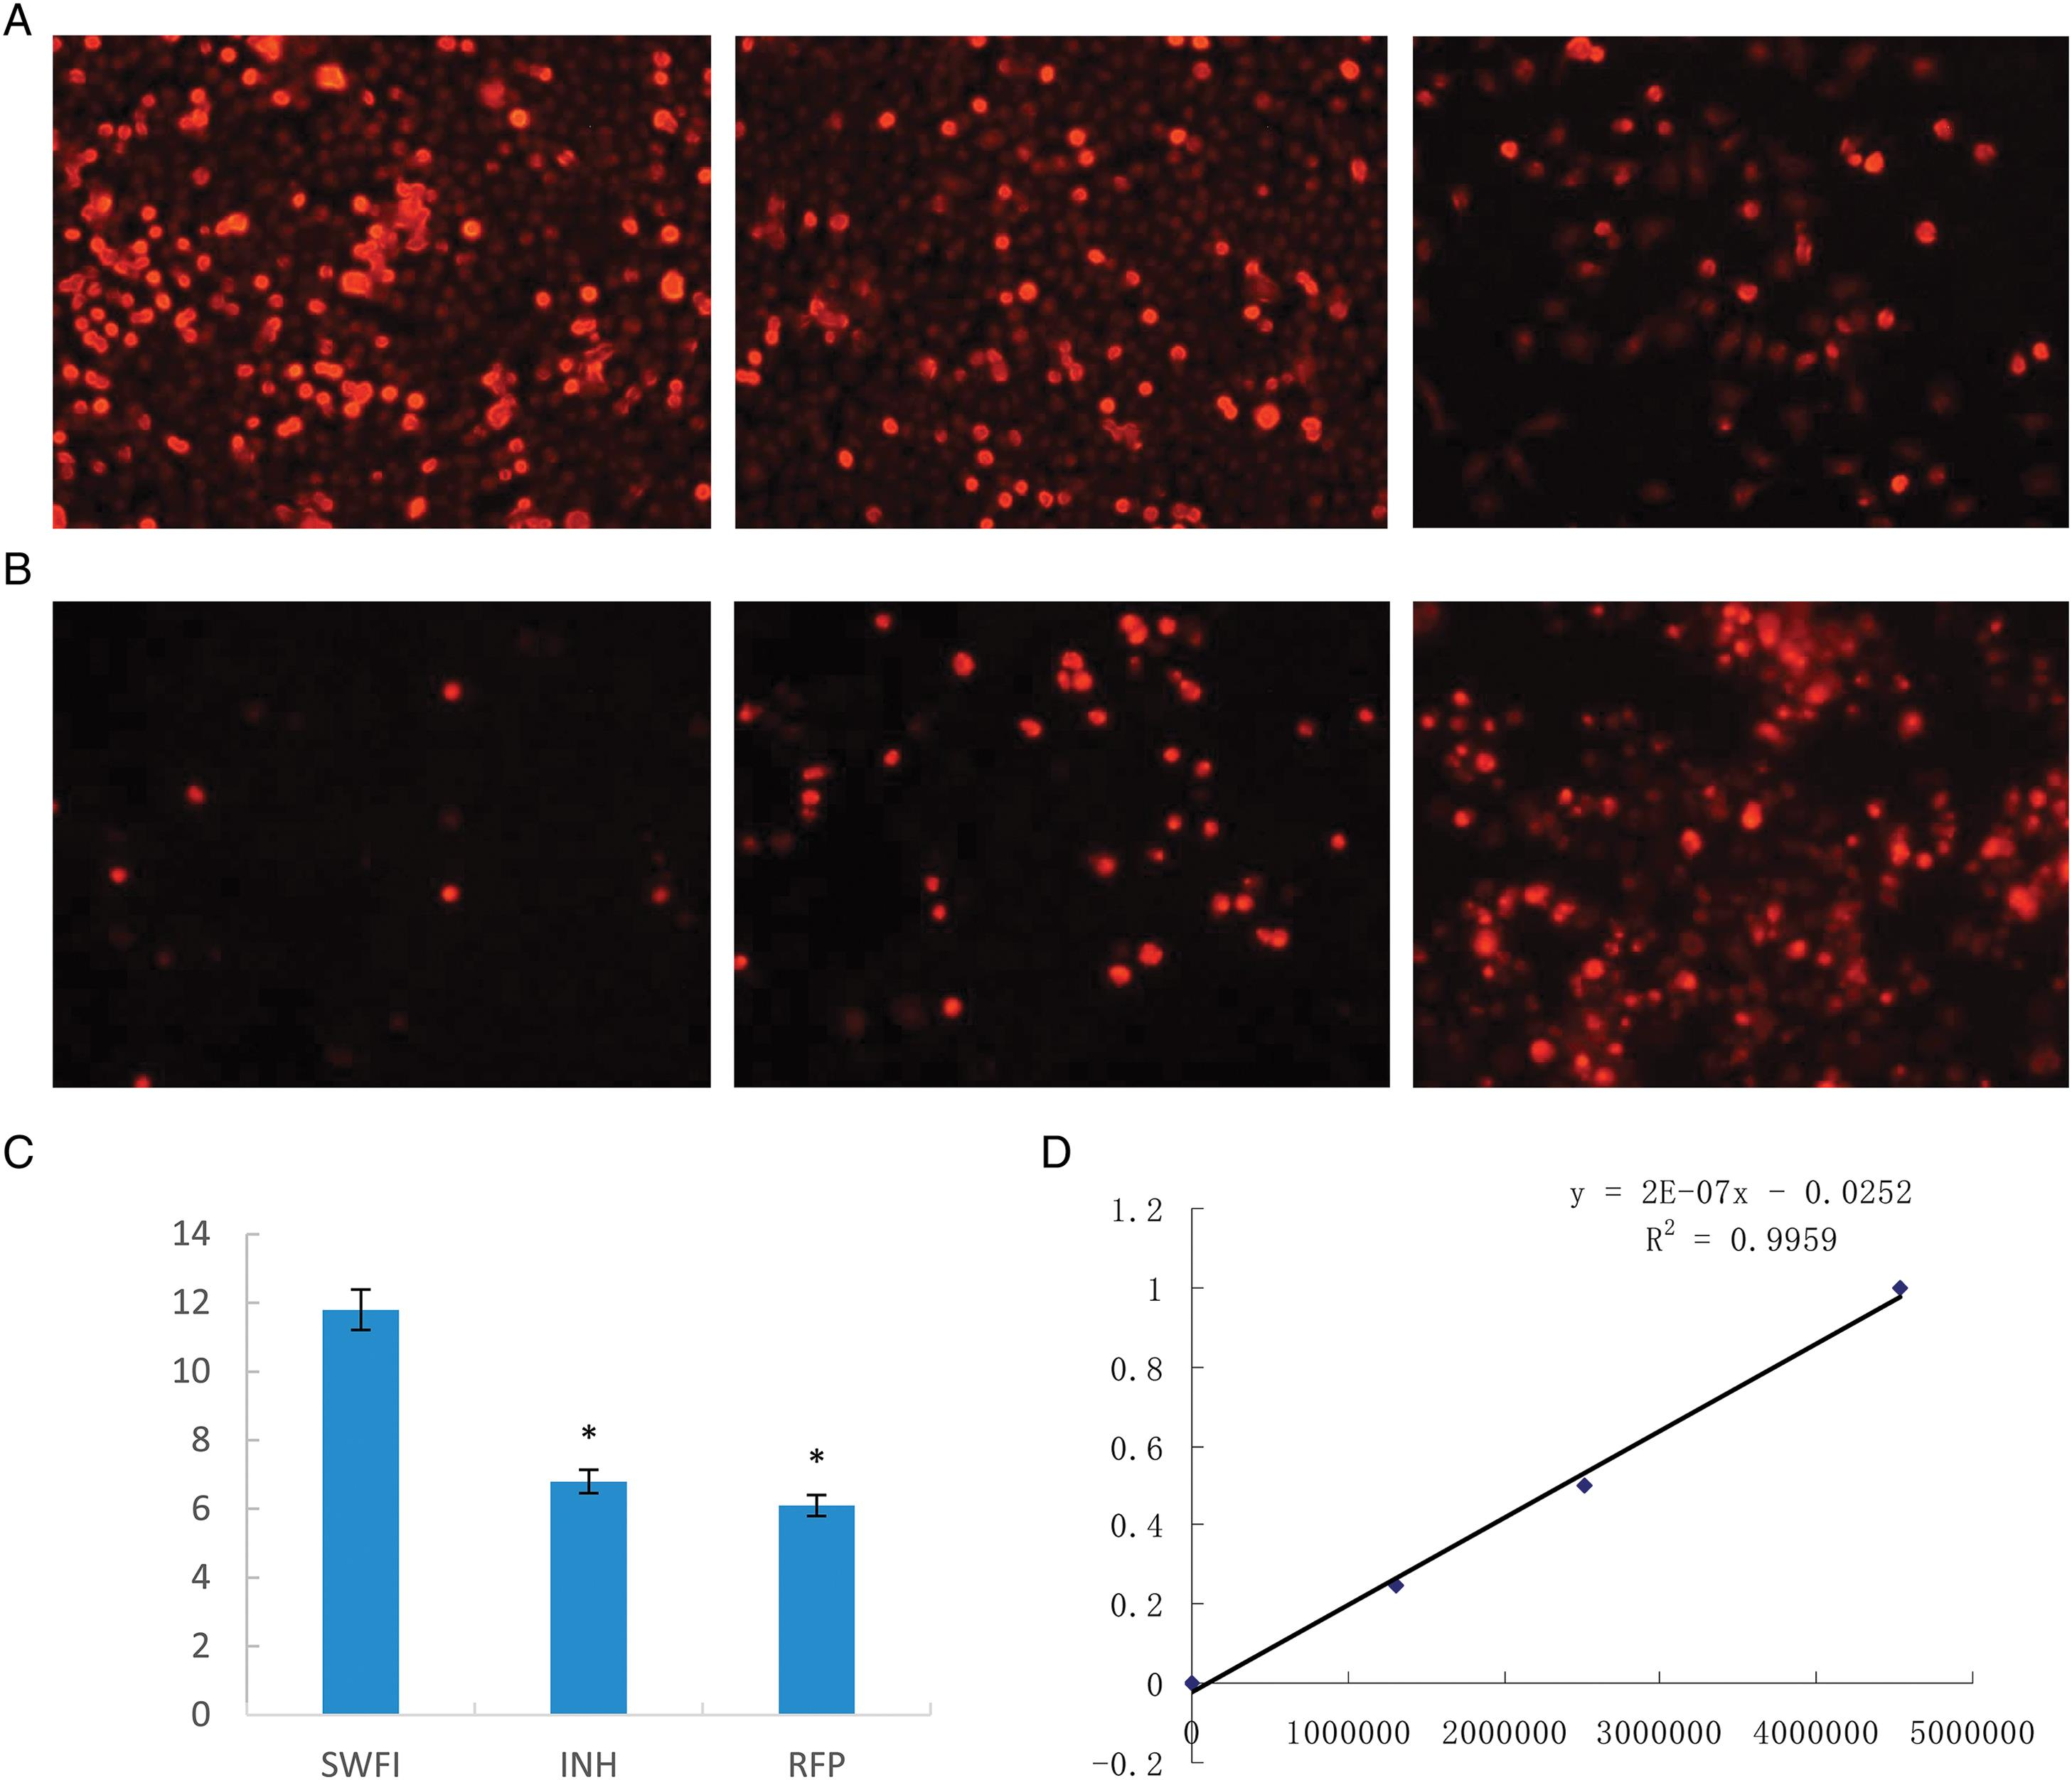 Toxicity effect on mitochondria in RFP- and INH-stimulated QSG7701 cells.